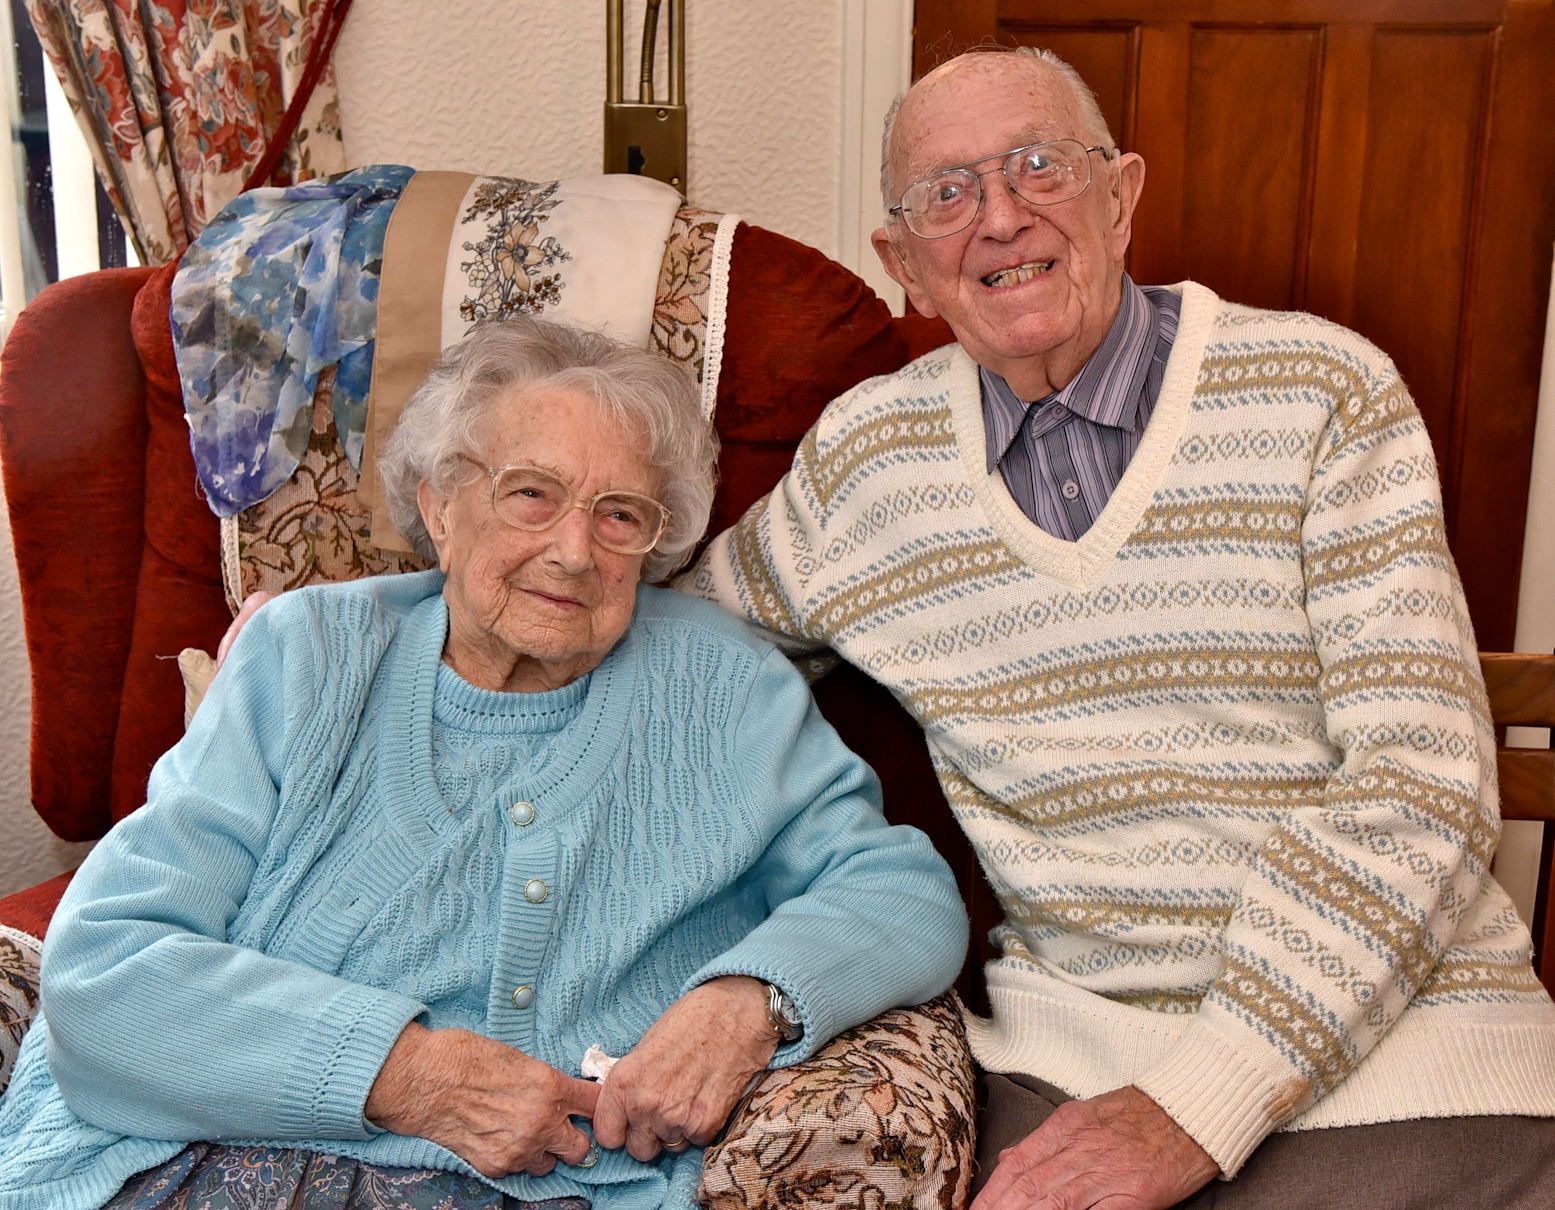 With their 77th wedding anniversary on the horizon, are John and Elizabeth UK's longest-married couple?